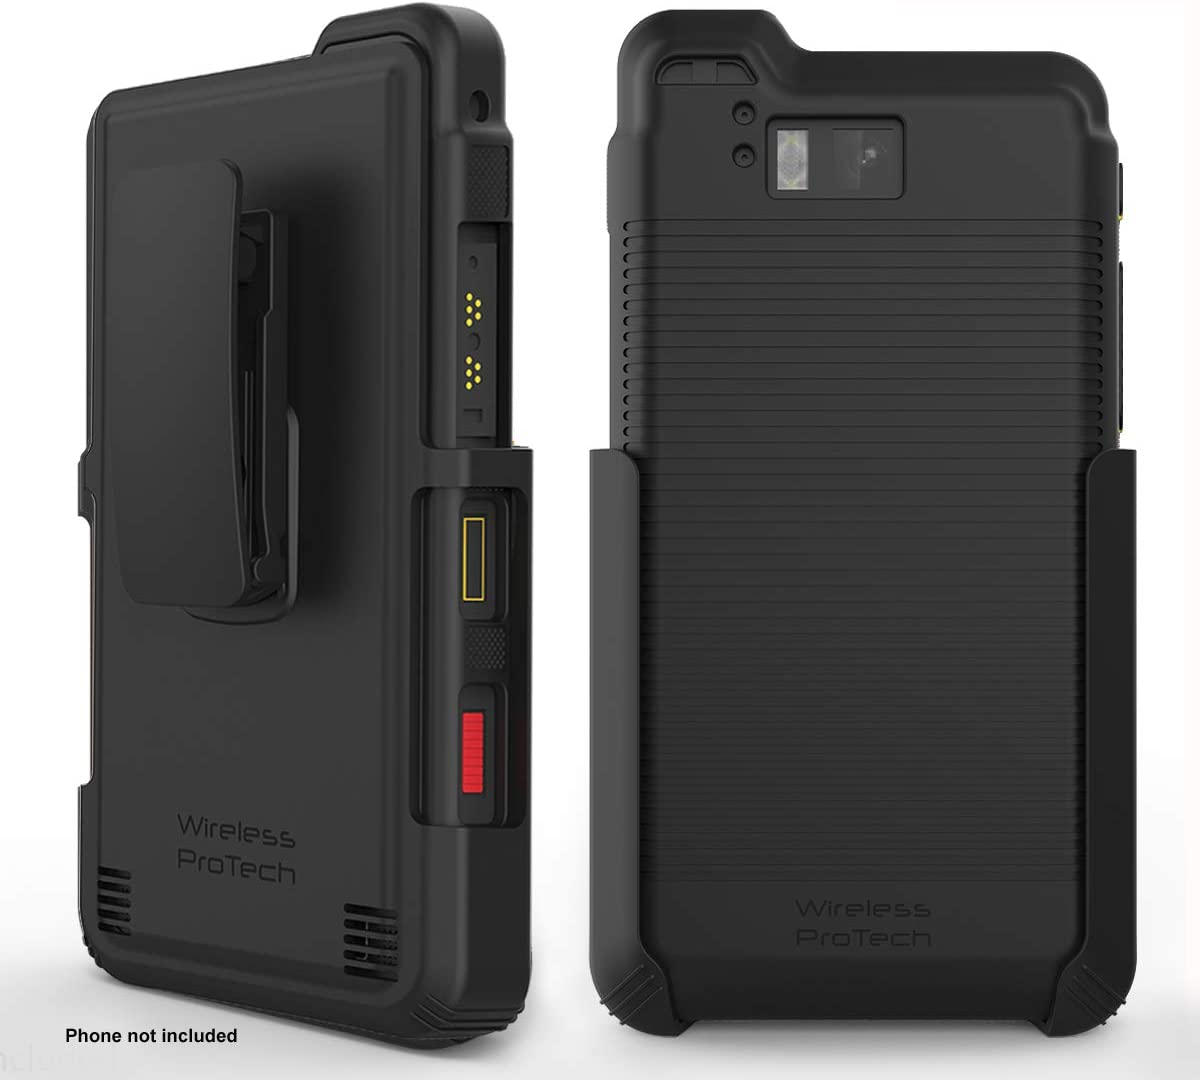 Wireless ProTech Case with Clip Compatible with Sonim XP8 Phone Model XP8800. Heavy Duty Rotating Belt Clip Holster and Durable Flexible Protective Case Combo (Black)